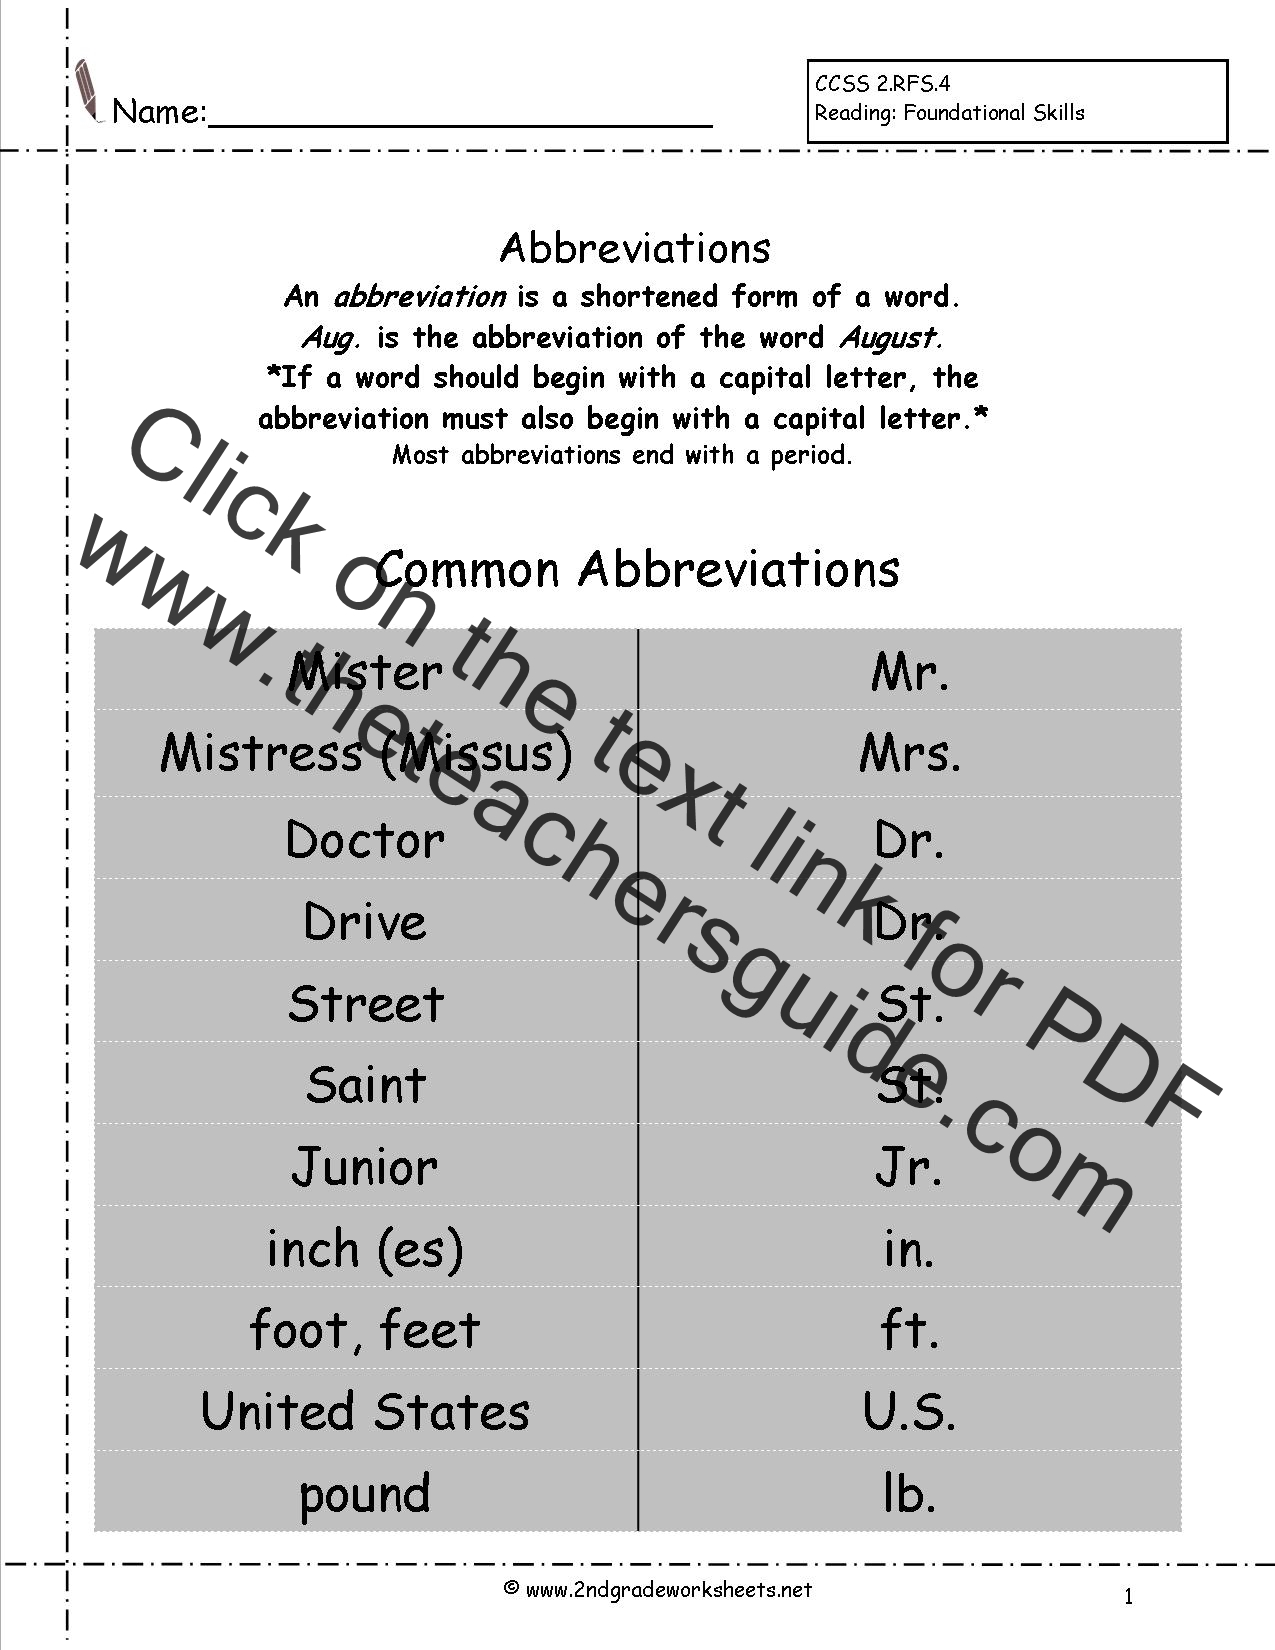 Free LanguageGrammar Worksheets and Printouts – 2nd Grade Writing Worksheets